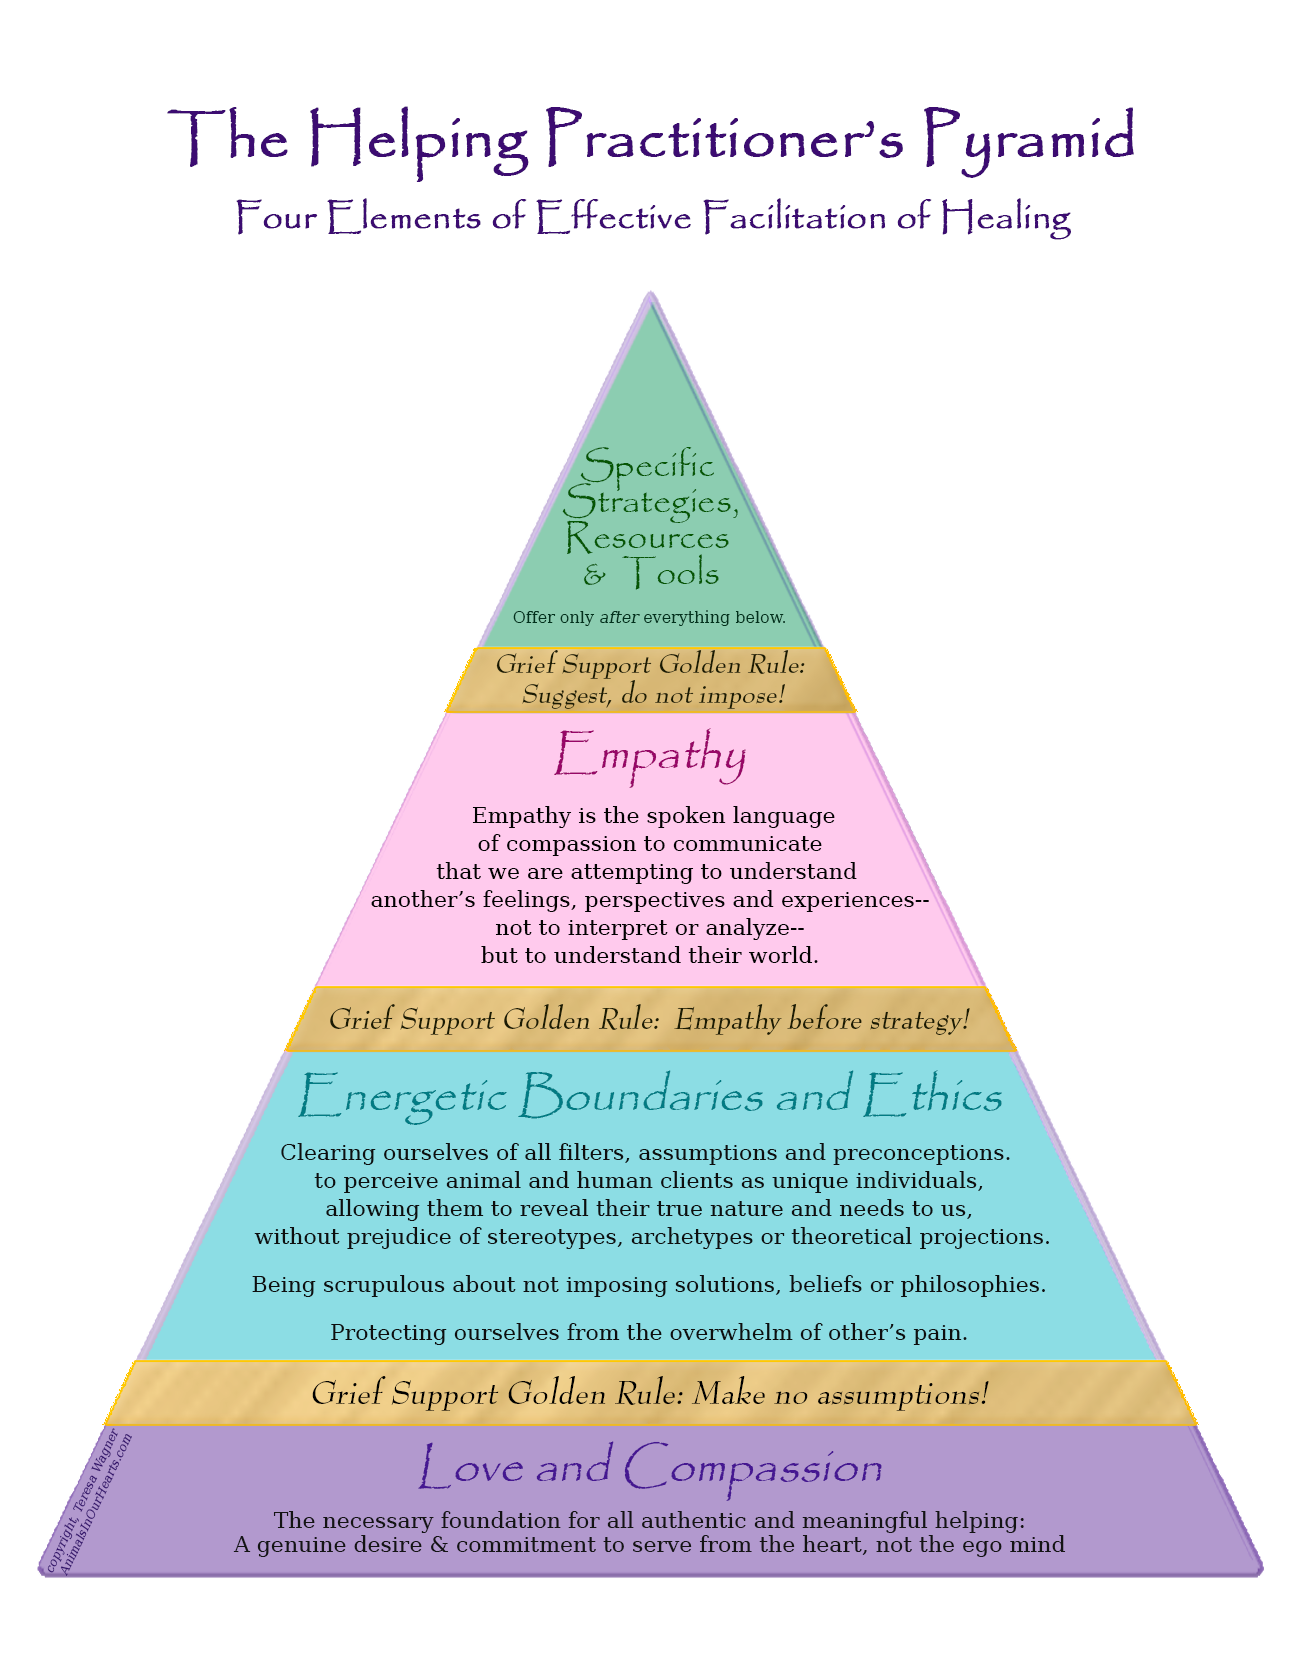 The Helping Practitioner's Pyramid. Four Elements of Effective Facilitation of Healing